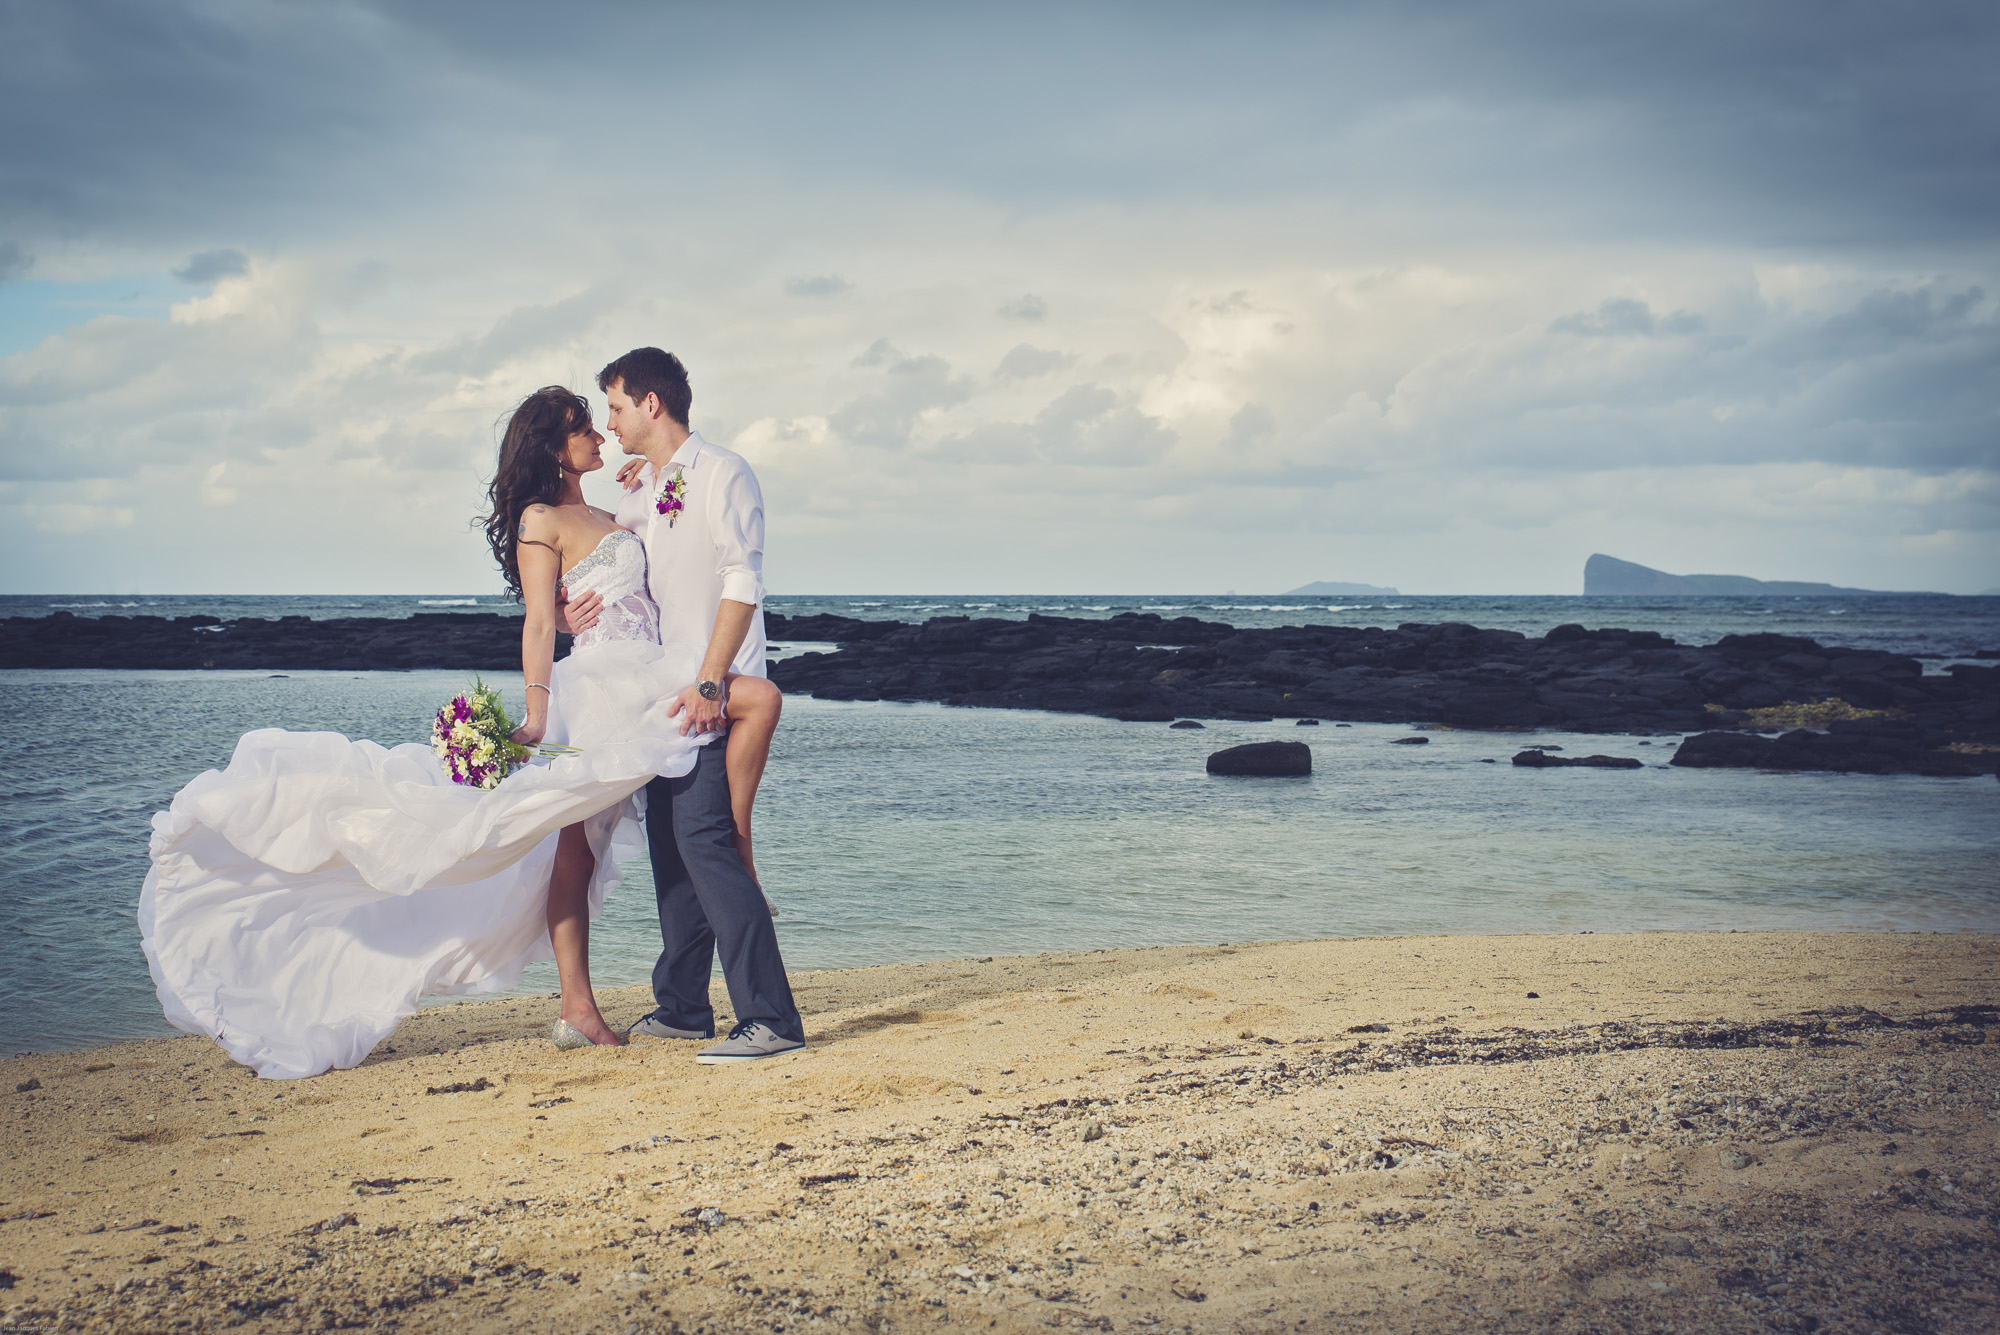 Justyna and Michael-149.jpg